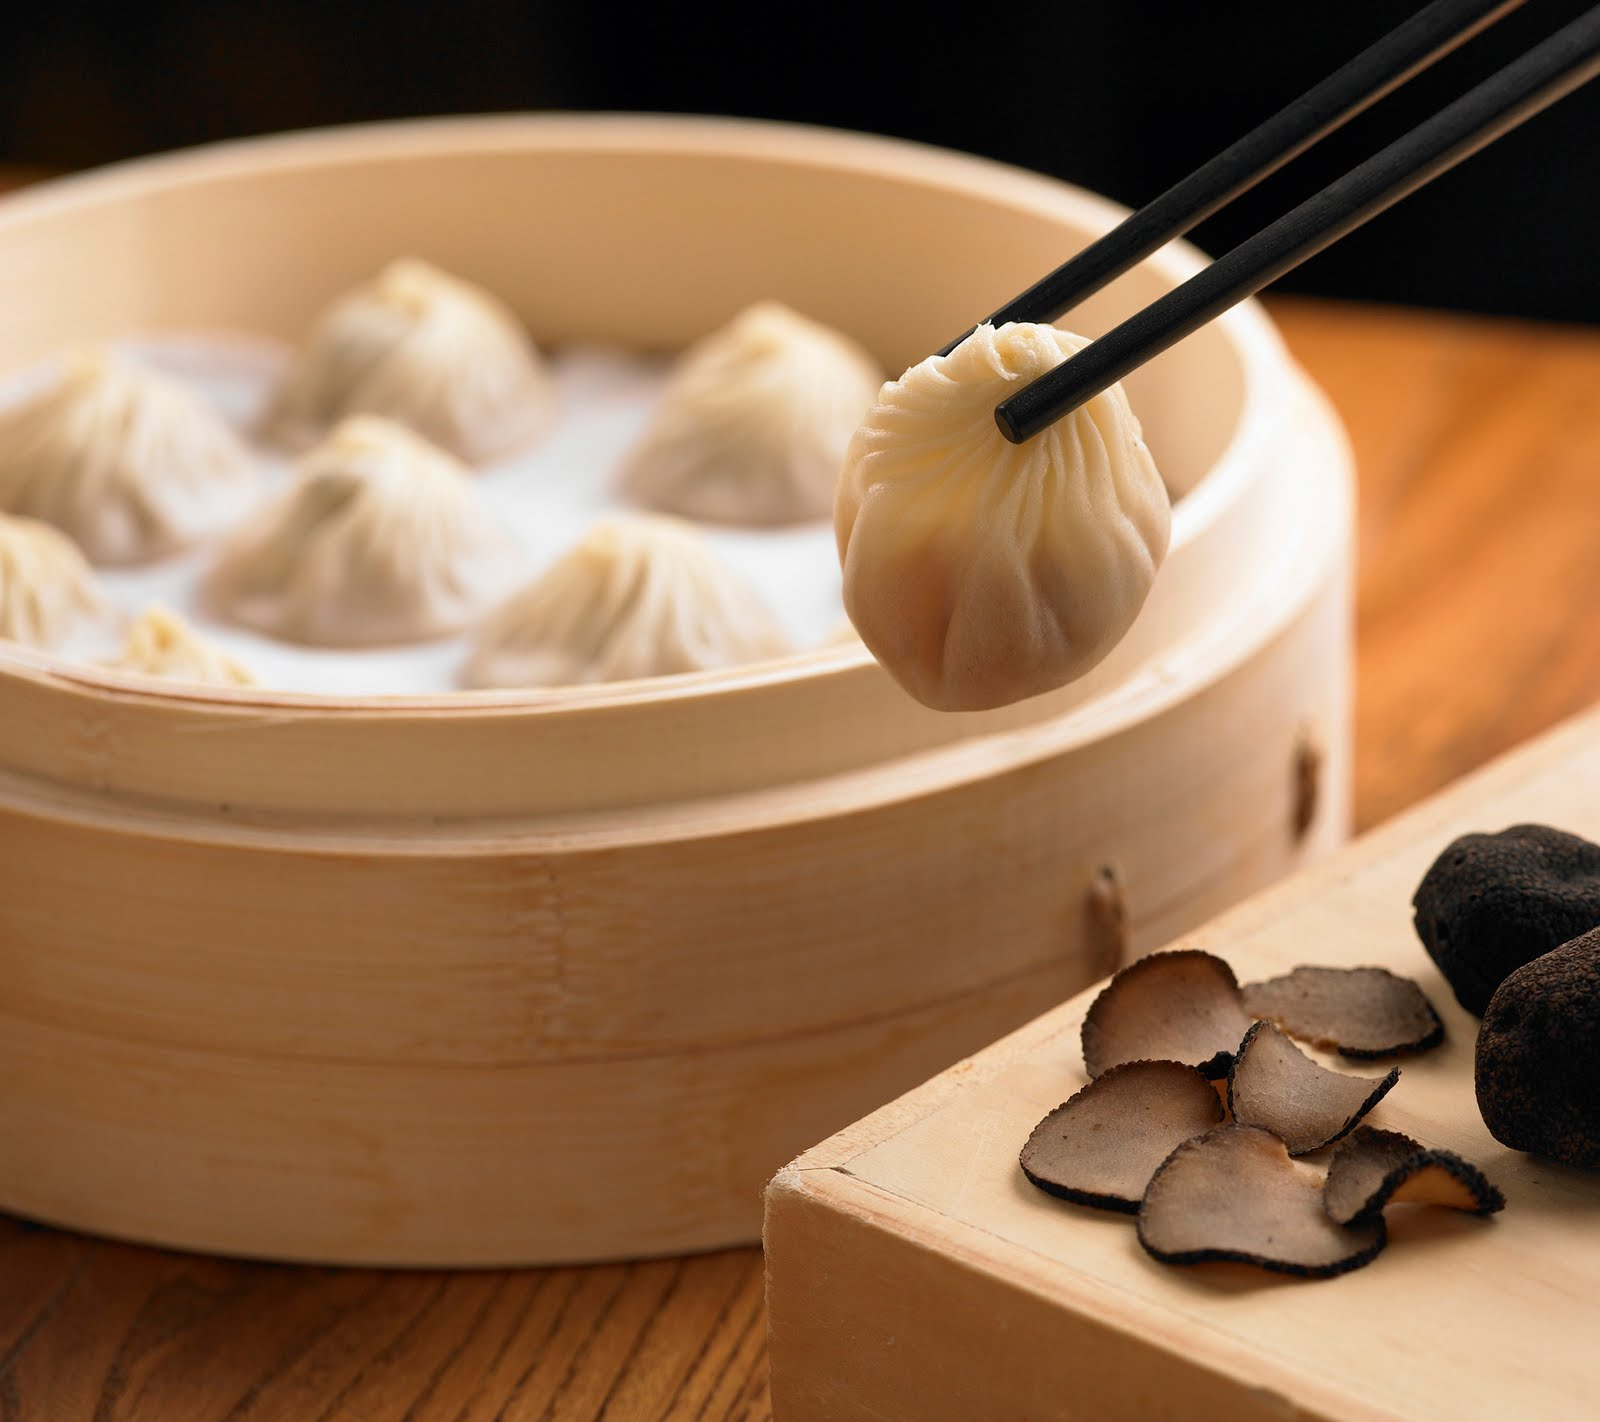 best dumplings los angeles, din tai fung, din tai fung 1, din tai fung #1, din tai fung arcadia, din tai fung los angeles, din tai fung la, best chinese food la, best chinese food los angeles, best dumplings la, best soup dumplings la, best soup dumplings los angeles, chinese new year los angeles, style blog los angeles, style blog la, food blog los angeles, food blog la, best chinese food sgv, best chinese food arcadia, best dumplings arcadia, best dumplings sgv